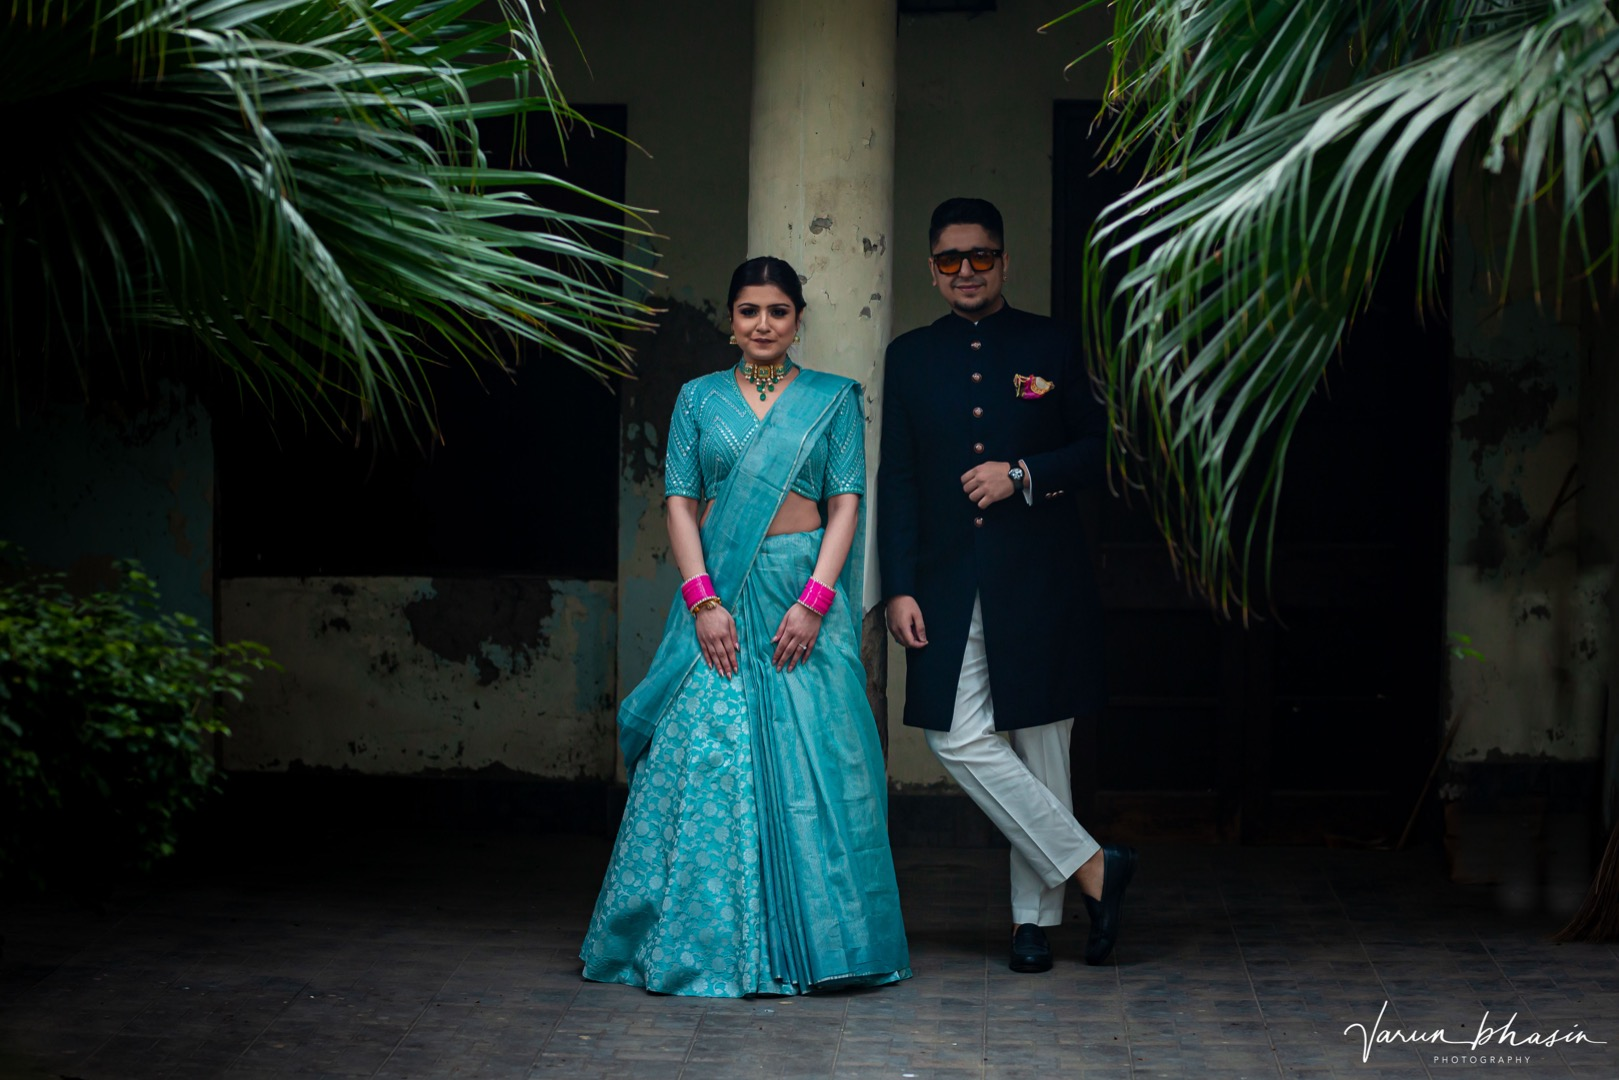 couple in contrasting outfits